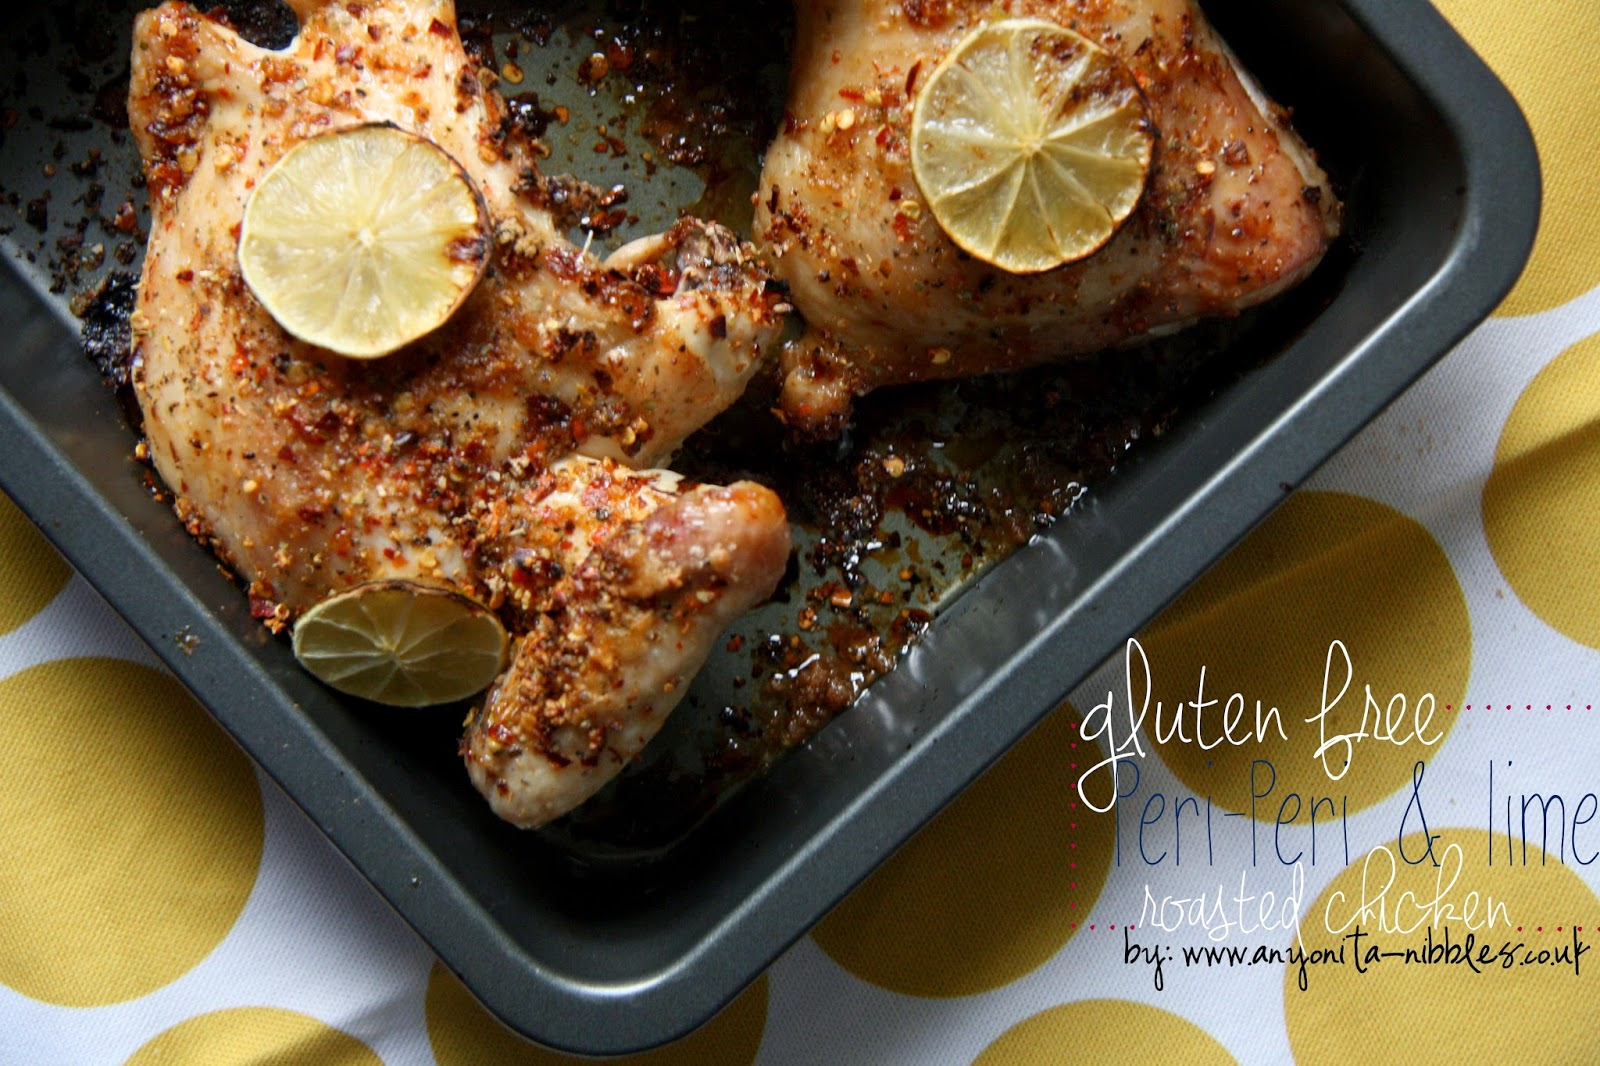 Gluten free peri-peri and lime chicken roasted in pan from www.anyonita-nibbles.co.uk